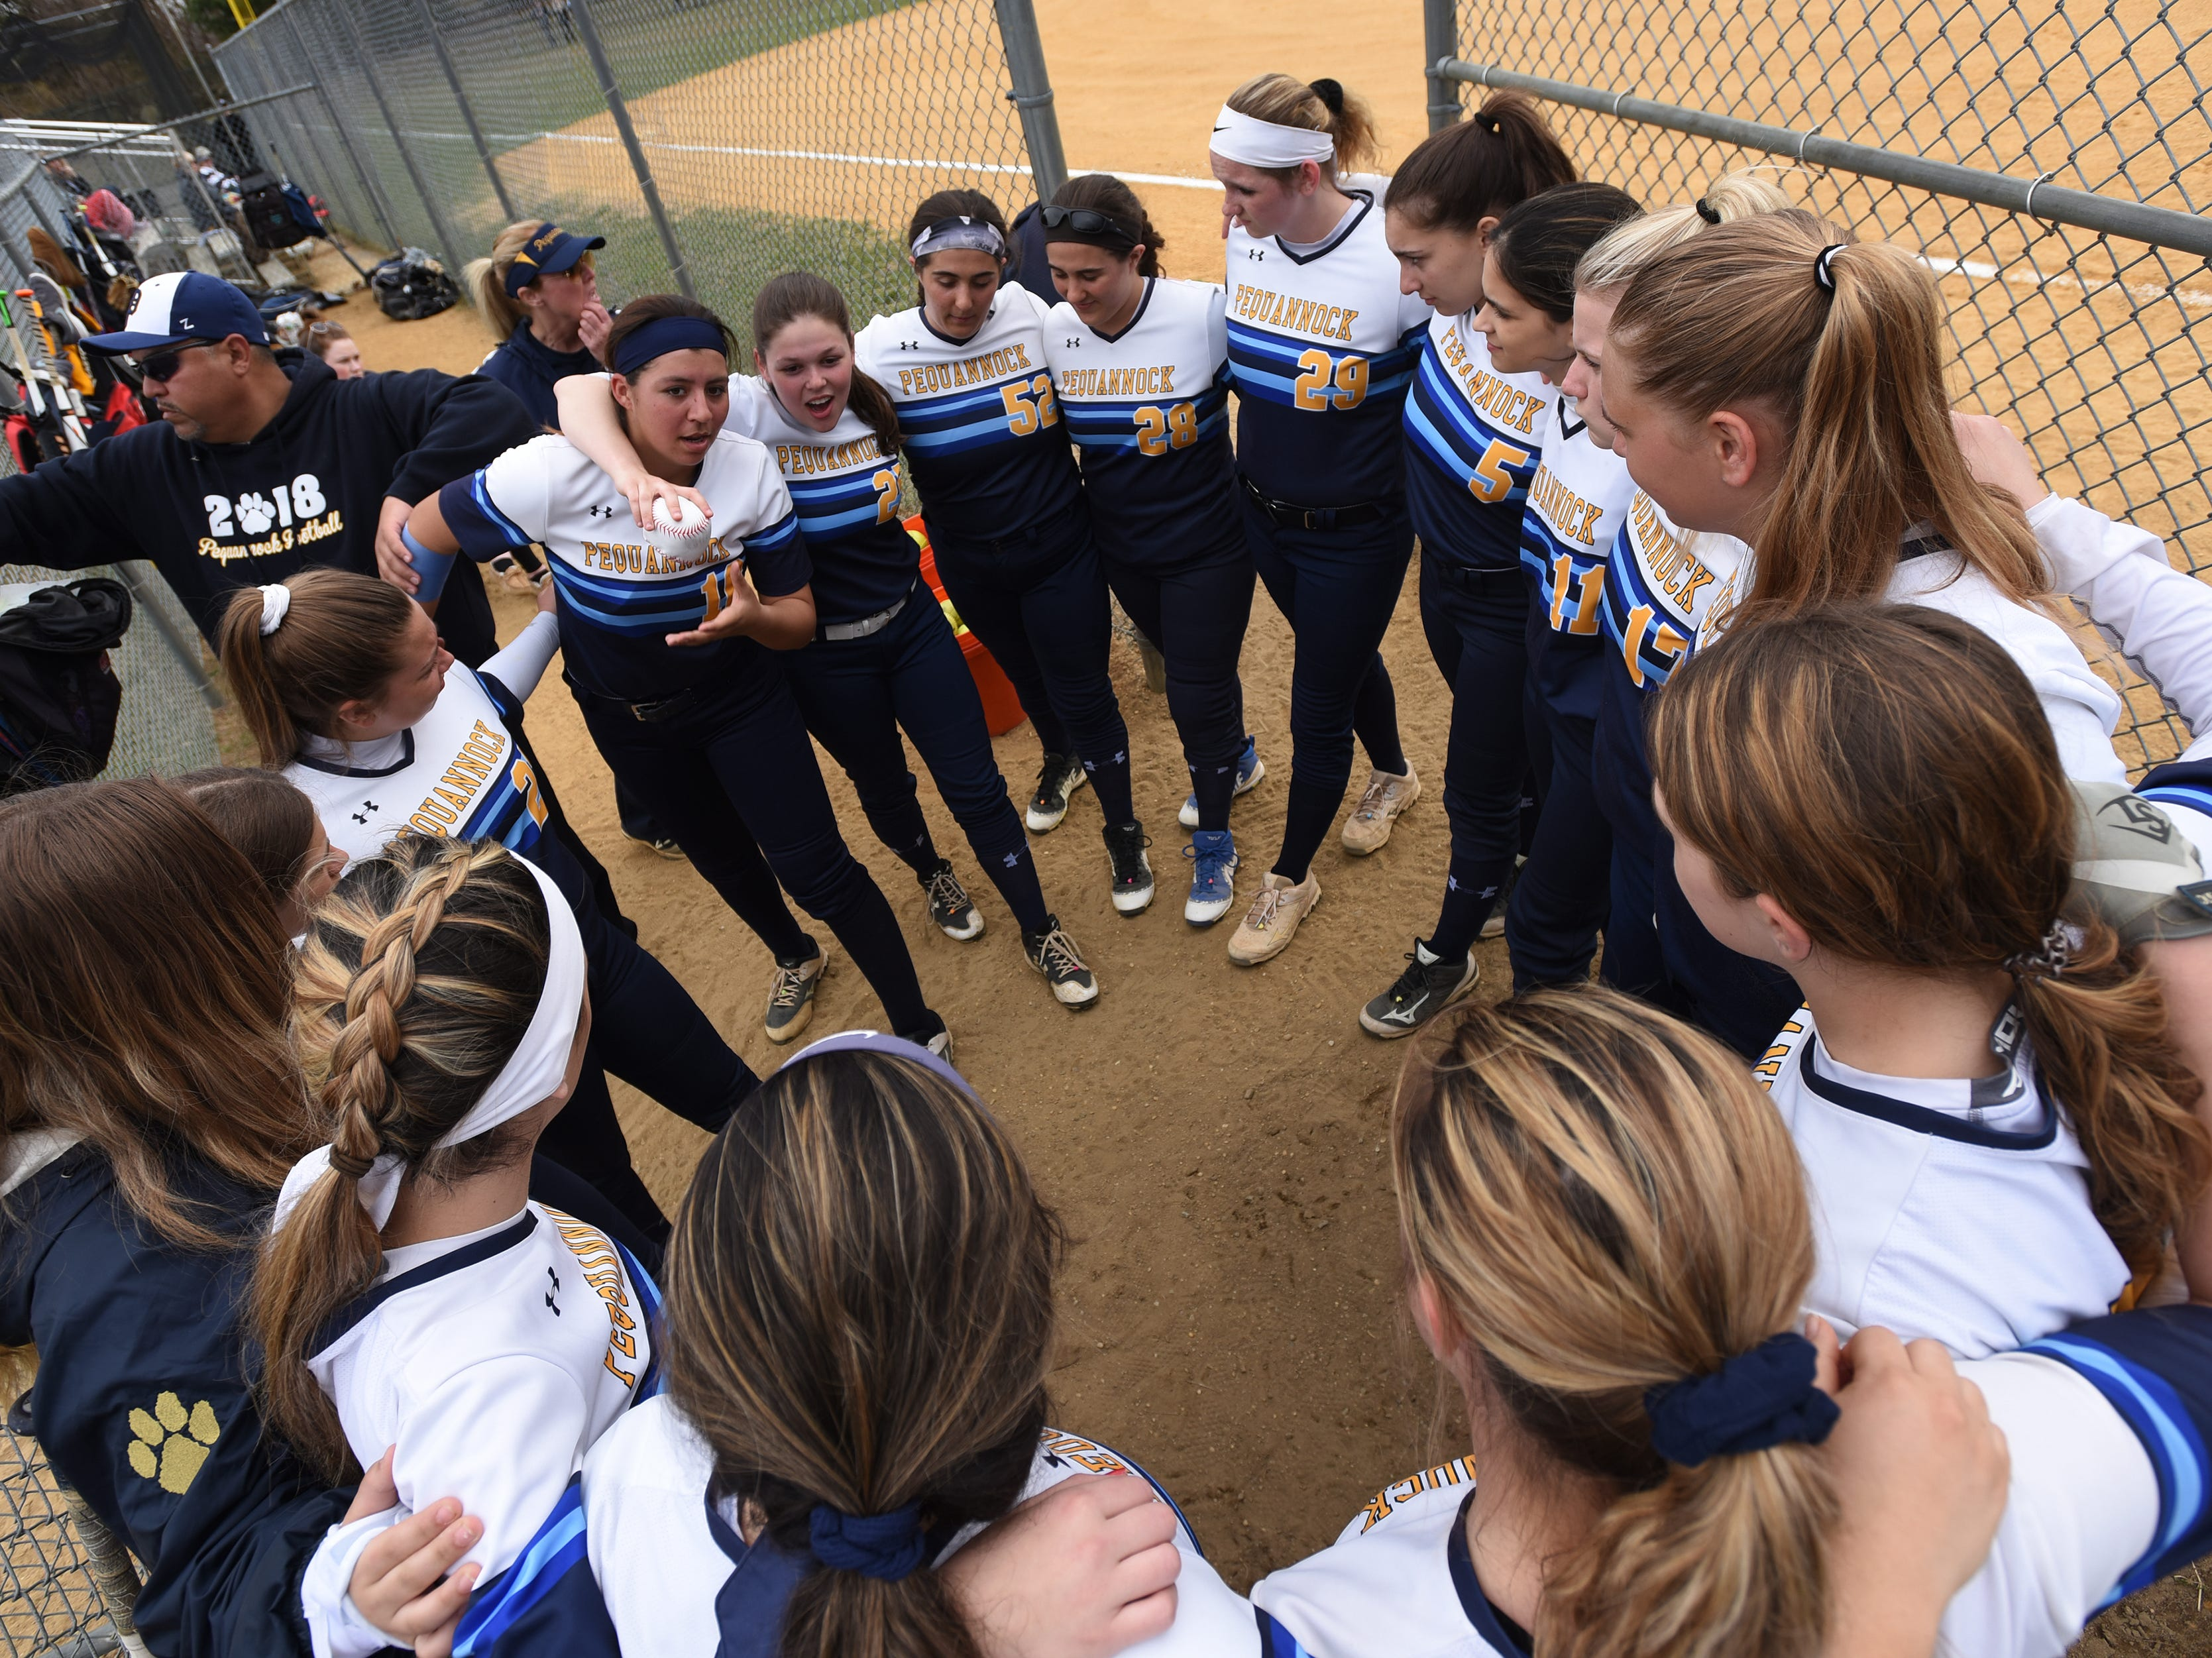 Pequannock at Kinnelon softball game in Kinnelon on Friday April 12, 2019. The Pequannock players huddle before the game.